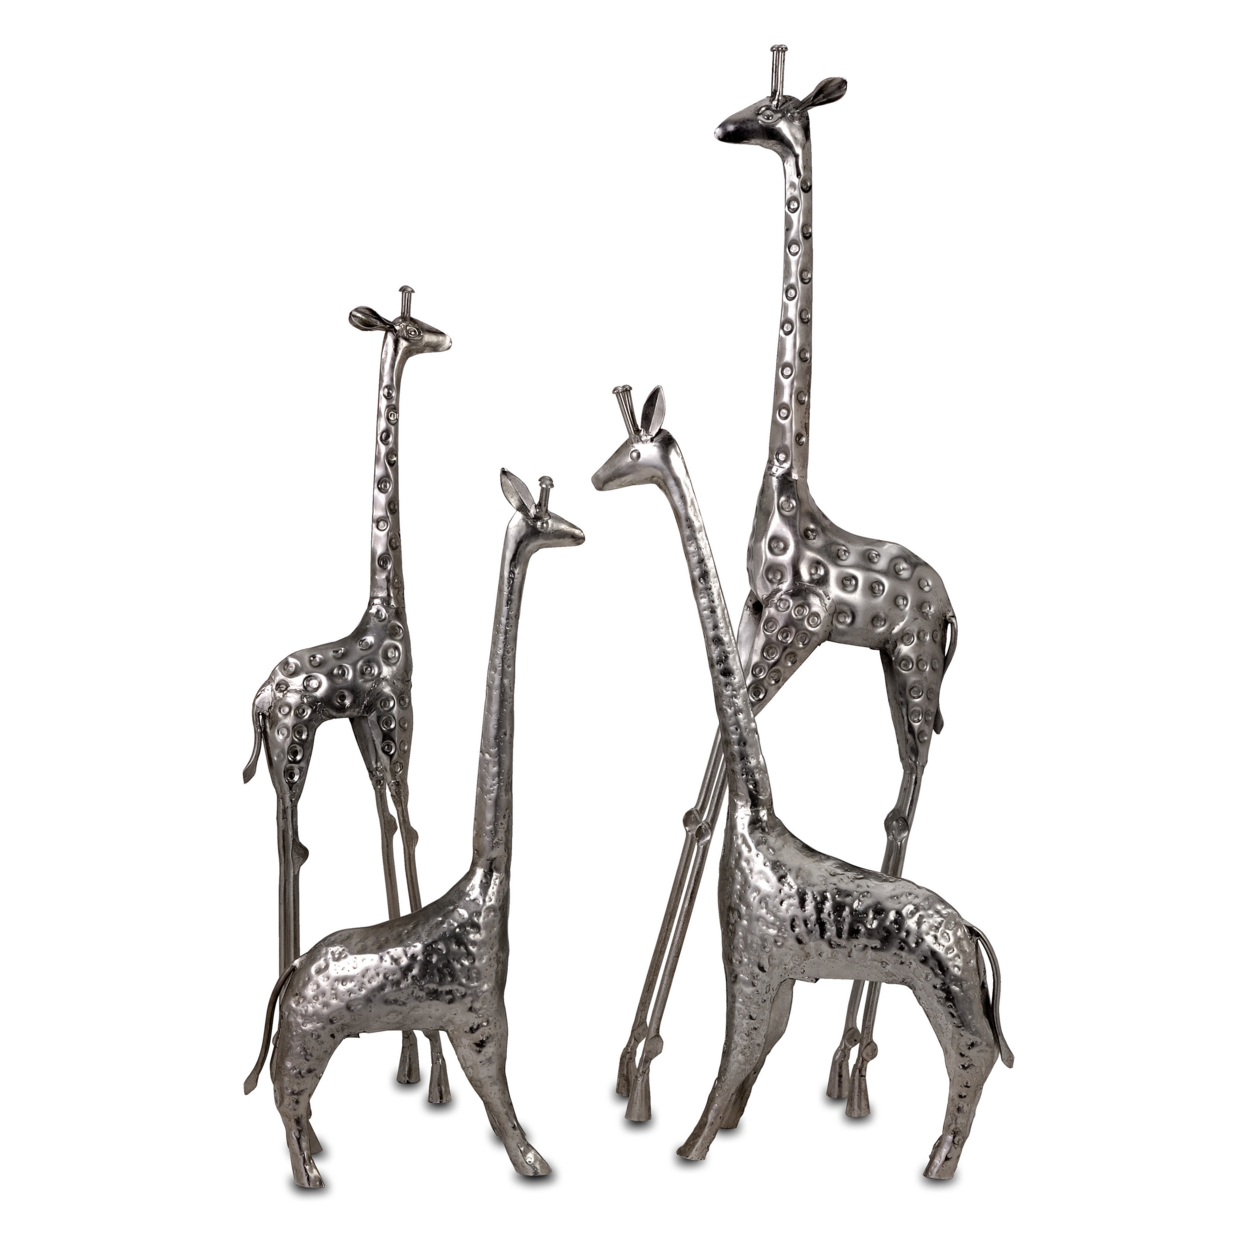 Safari Giraffe Herd - Set of 4 58995667c98fc433fe5a4eef